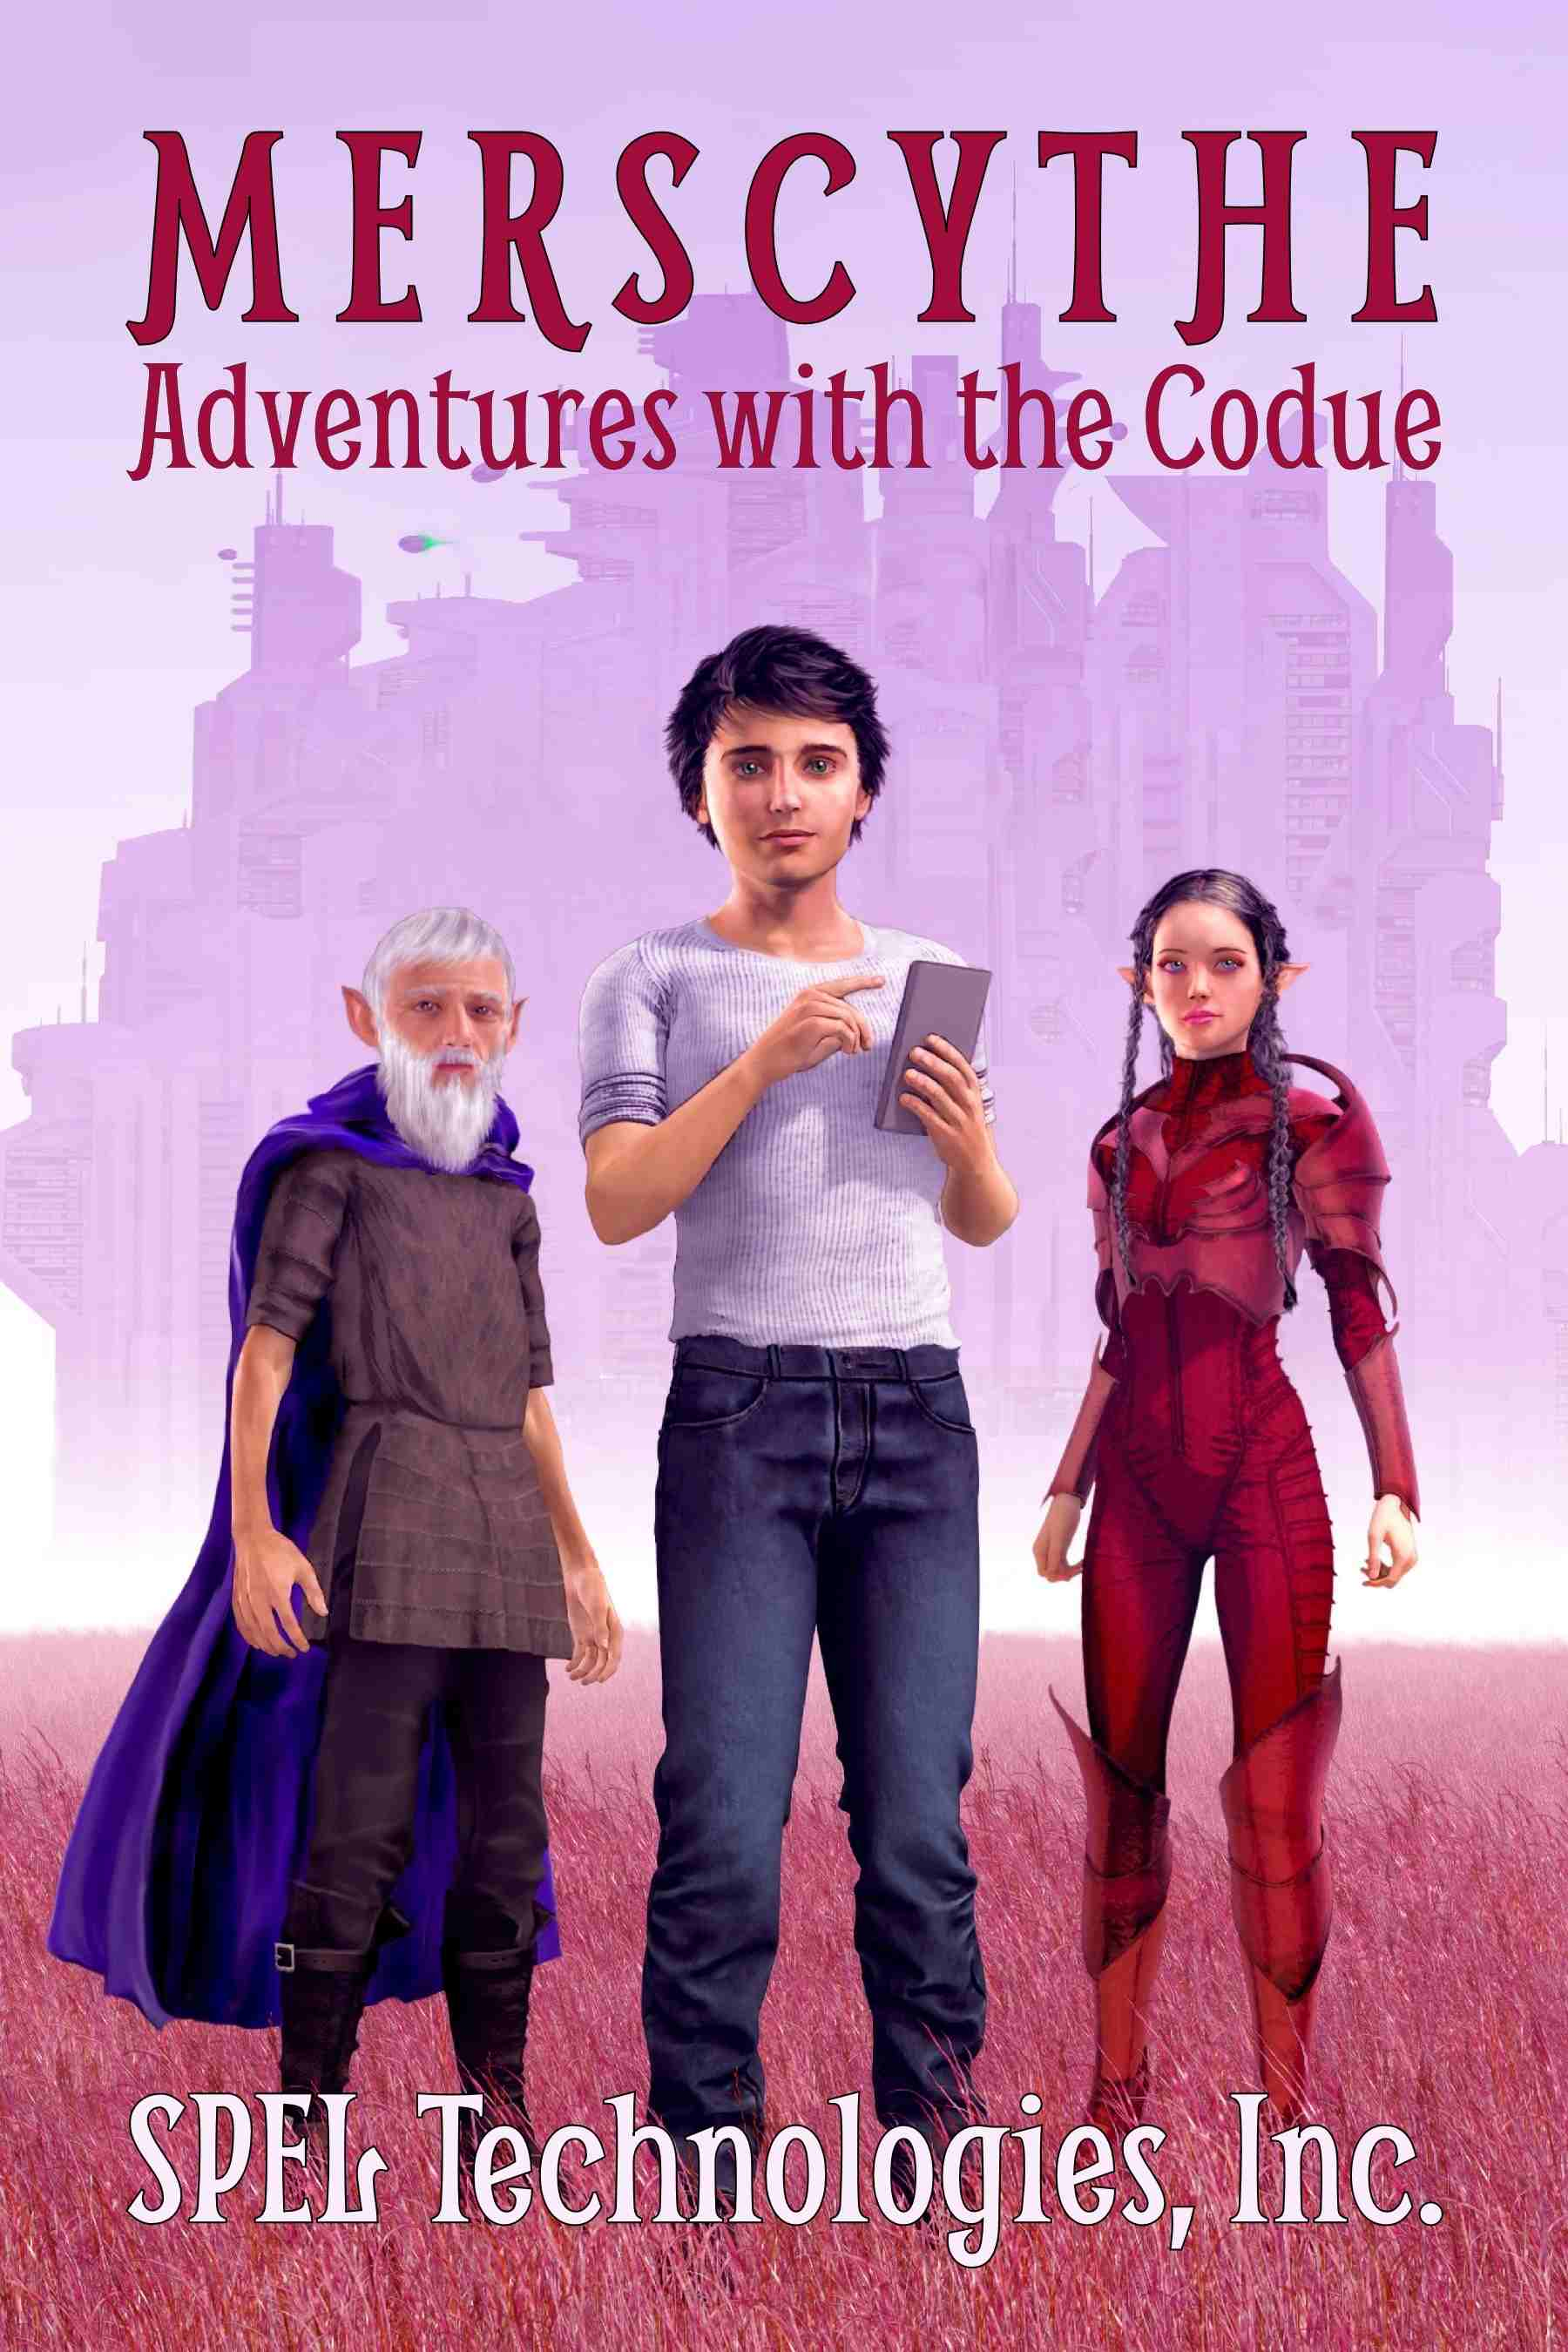 Merscythe Adventures with the Codue, by SPEL Technologies, Inc.